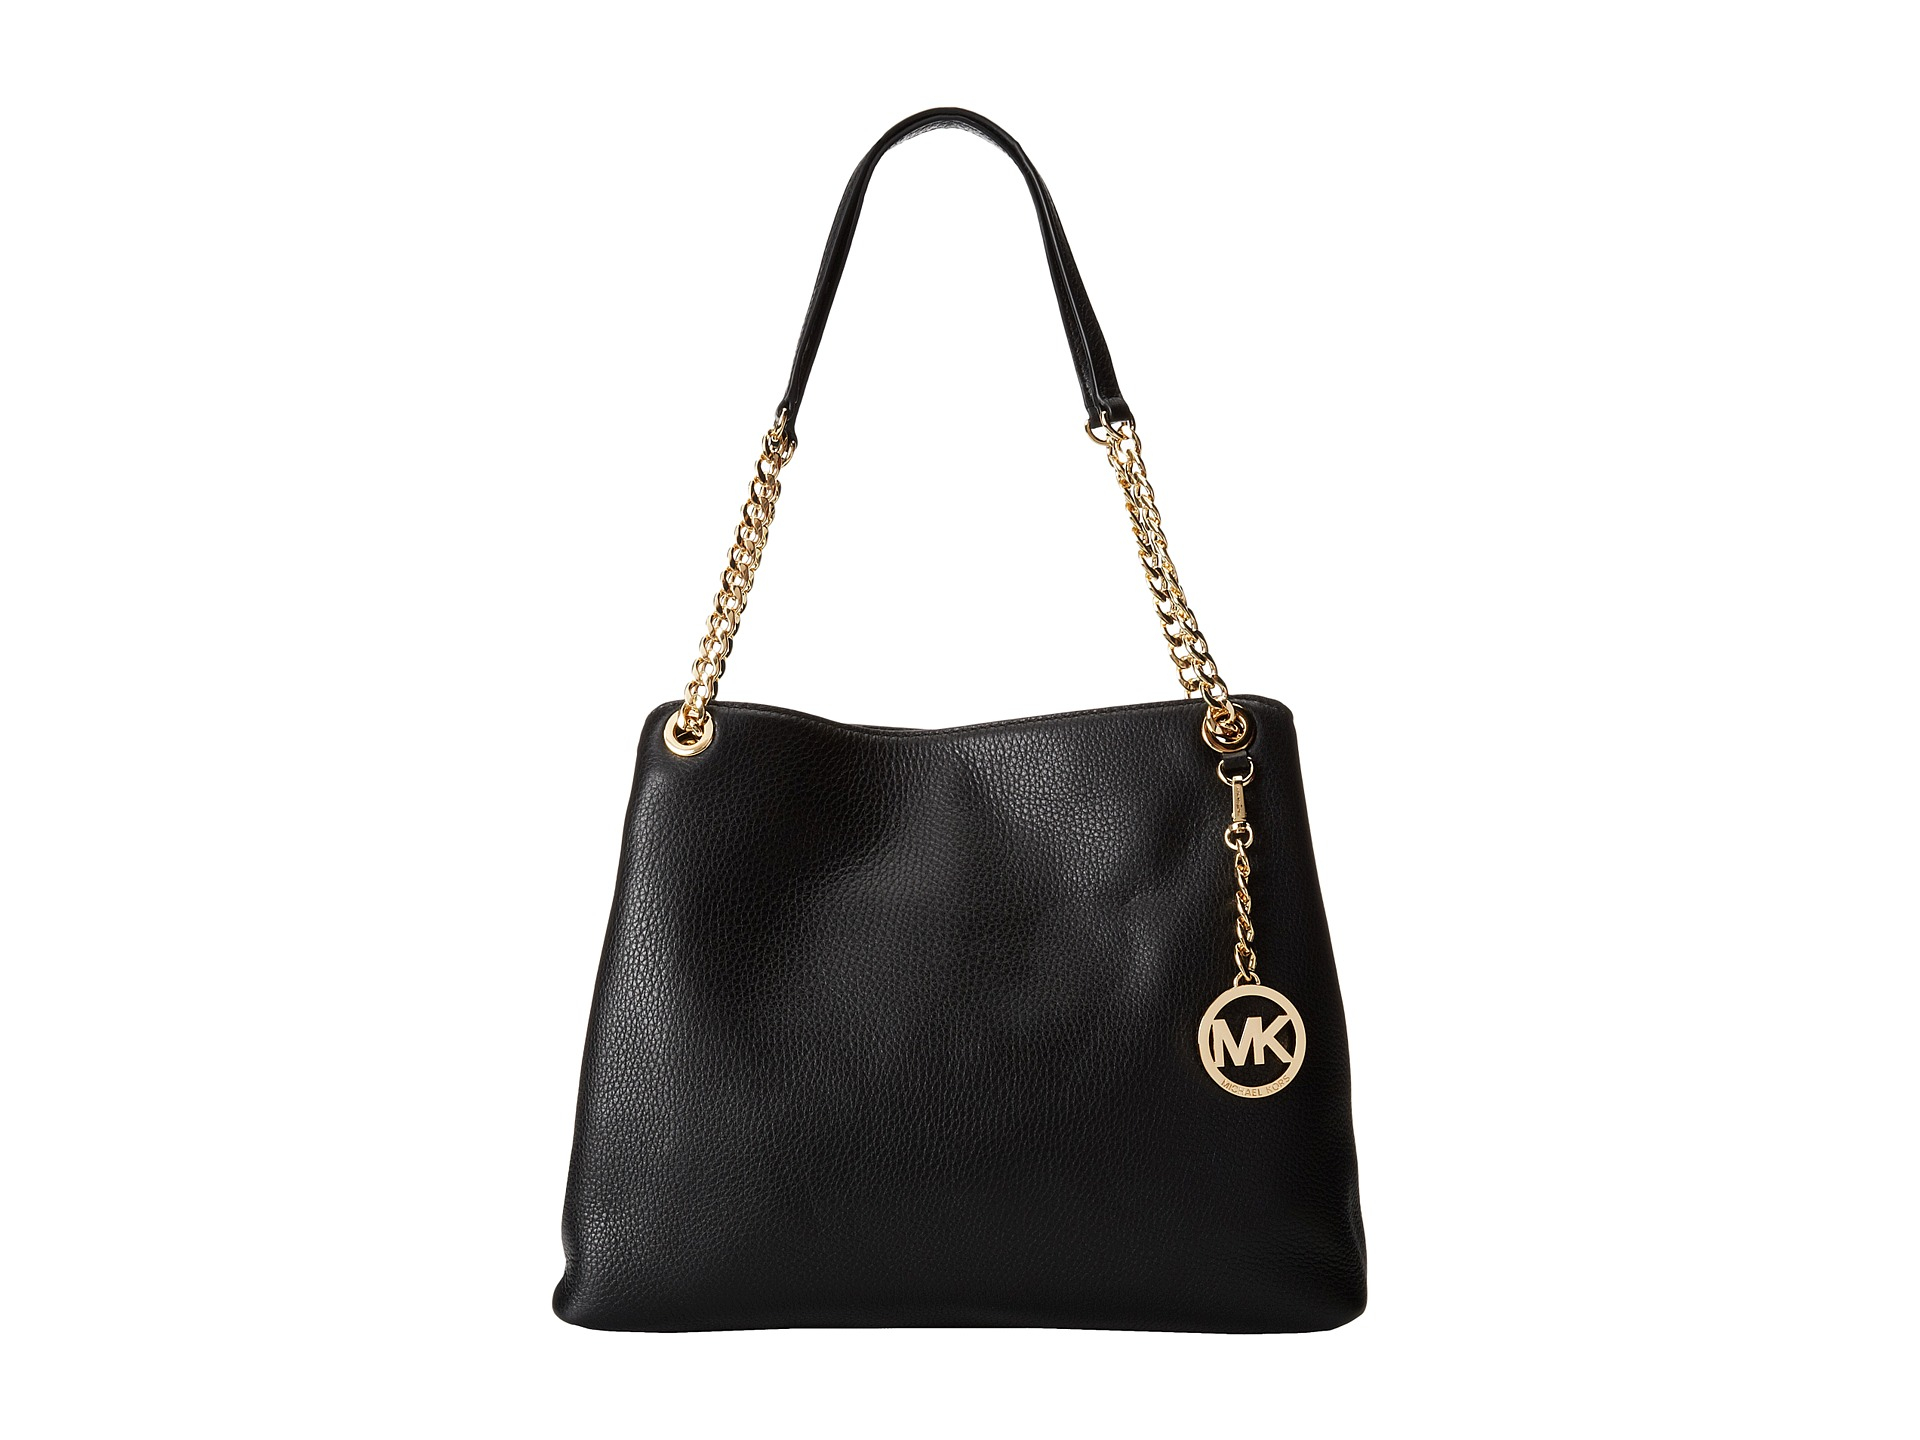 b334ac8be2a5 MICHAEL Michael Kors Jet Set Chain Item Large Shoulder Tote in Black - Lyst